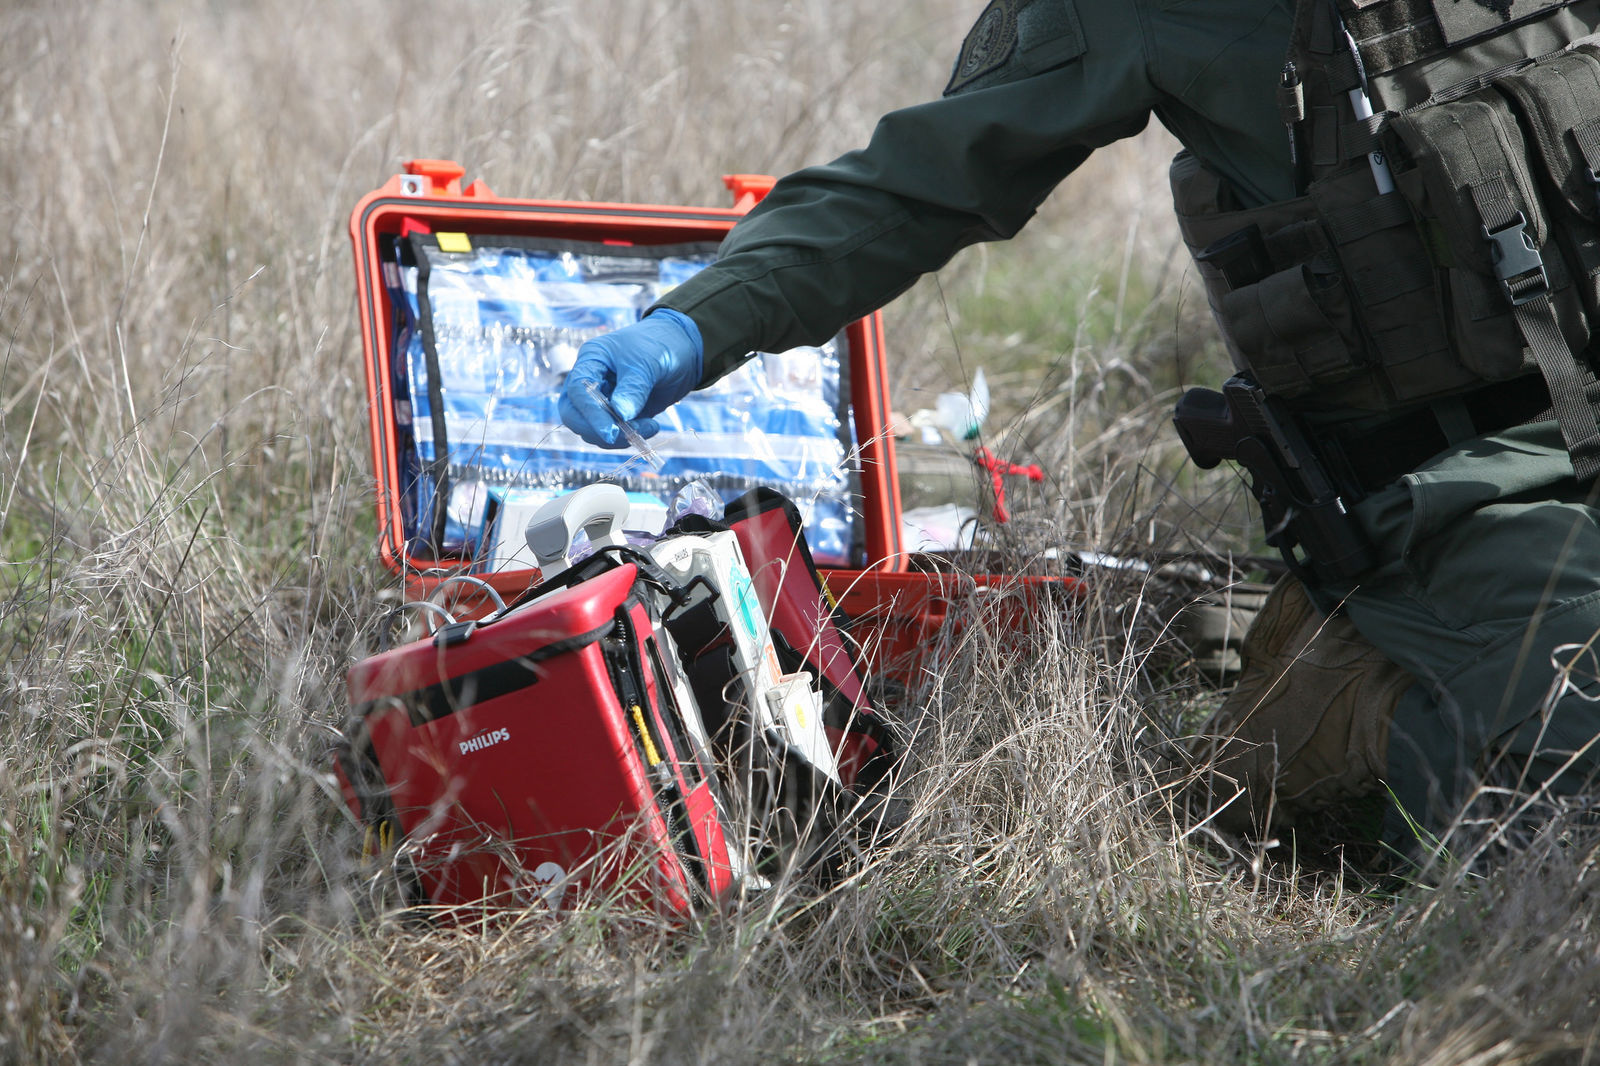 <p>This December 5, 2013 shows a training exercise, where BORSTAR agents carry medical field kits to render essential emergency aid to victims in trouble. (Photo: CBP/USBP)</p>